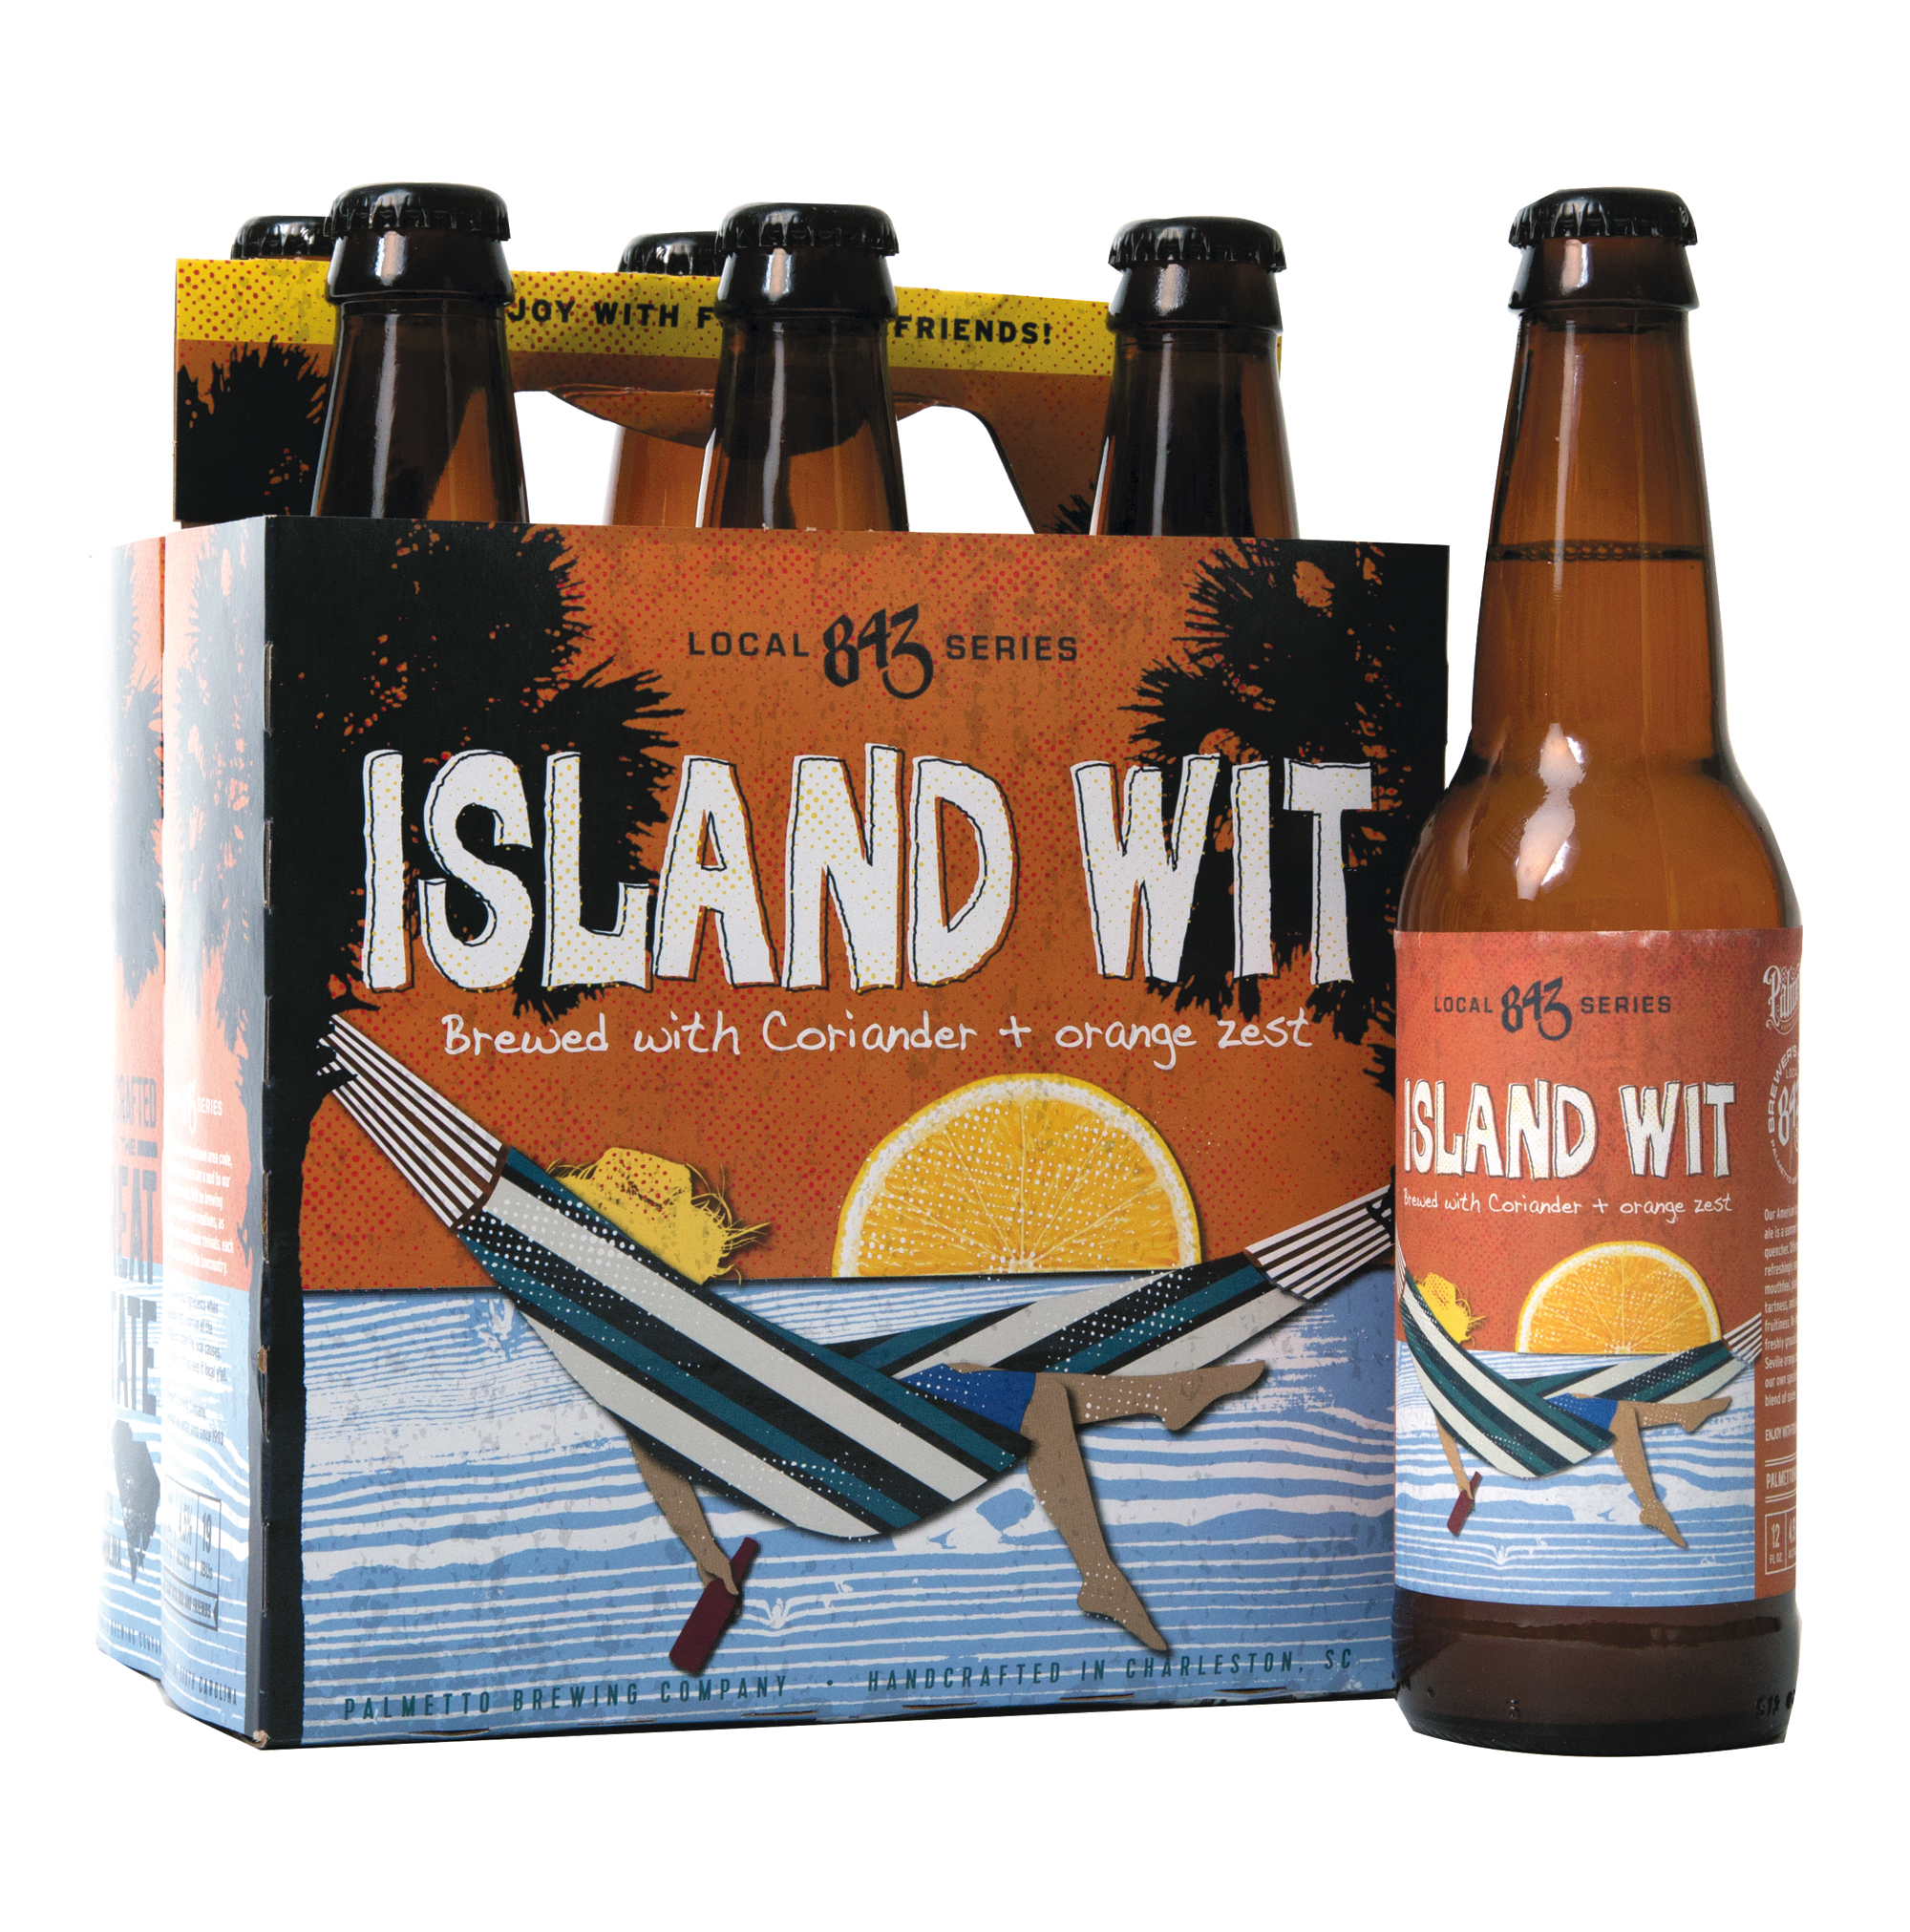 Palmetto Brewing Company's Local 843 Series, Island Wit